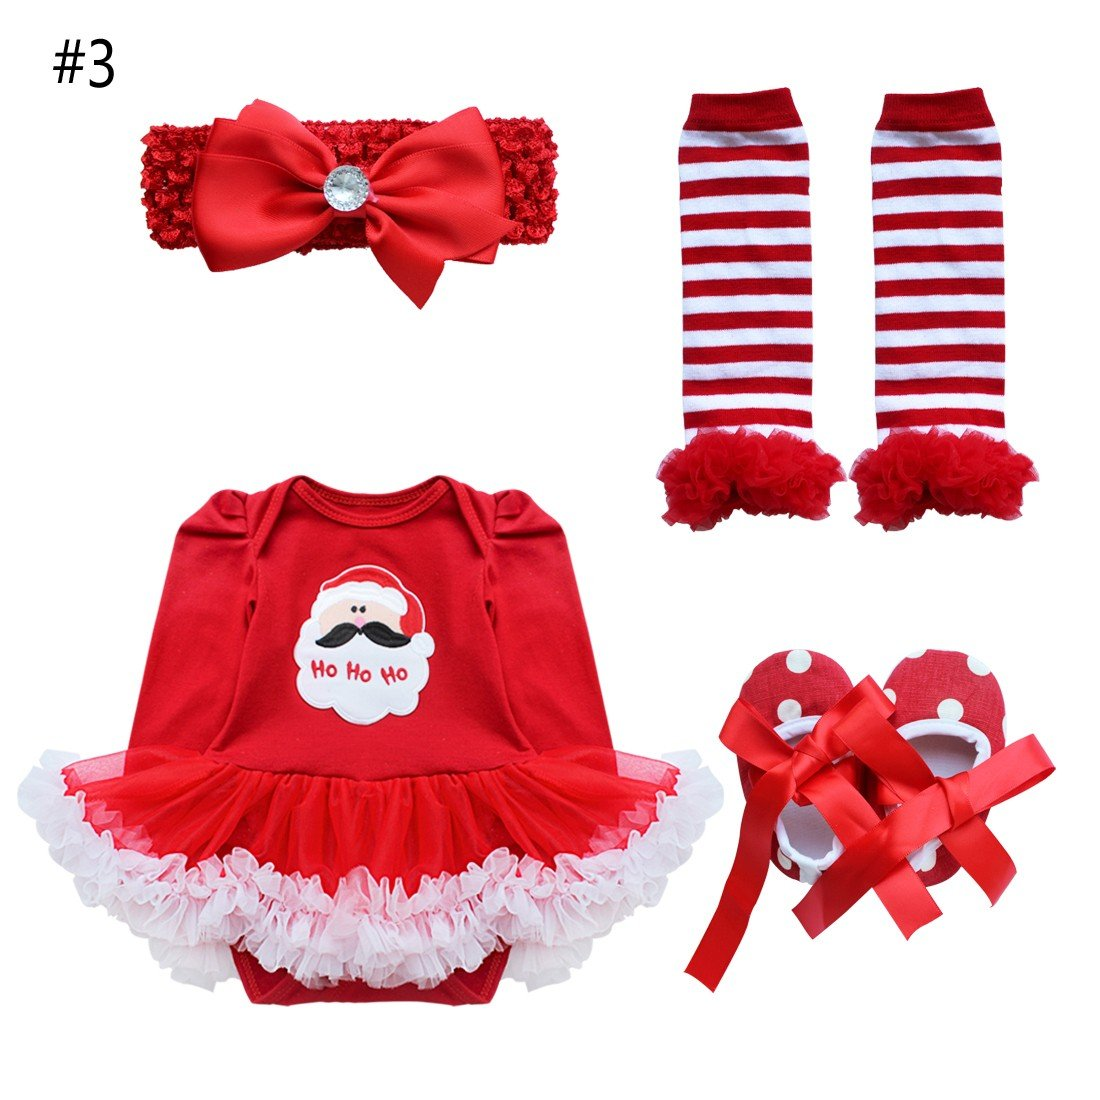 ACSUSS Baby Girls 4PCS Christmas Xmas Costumes Long Sleeves Romper with Headband Leg Warmer Shoes Outfits